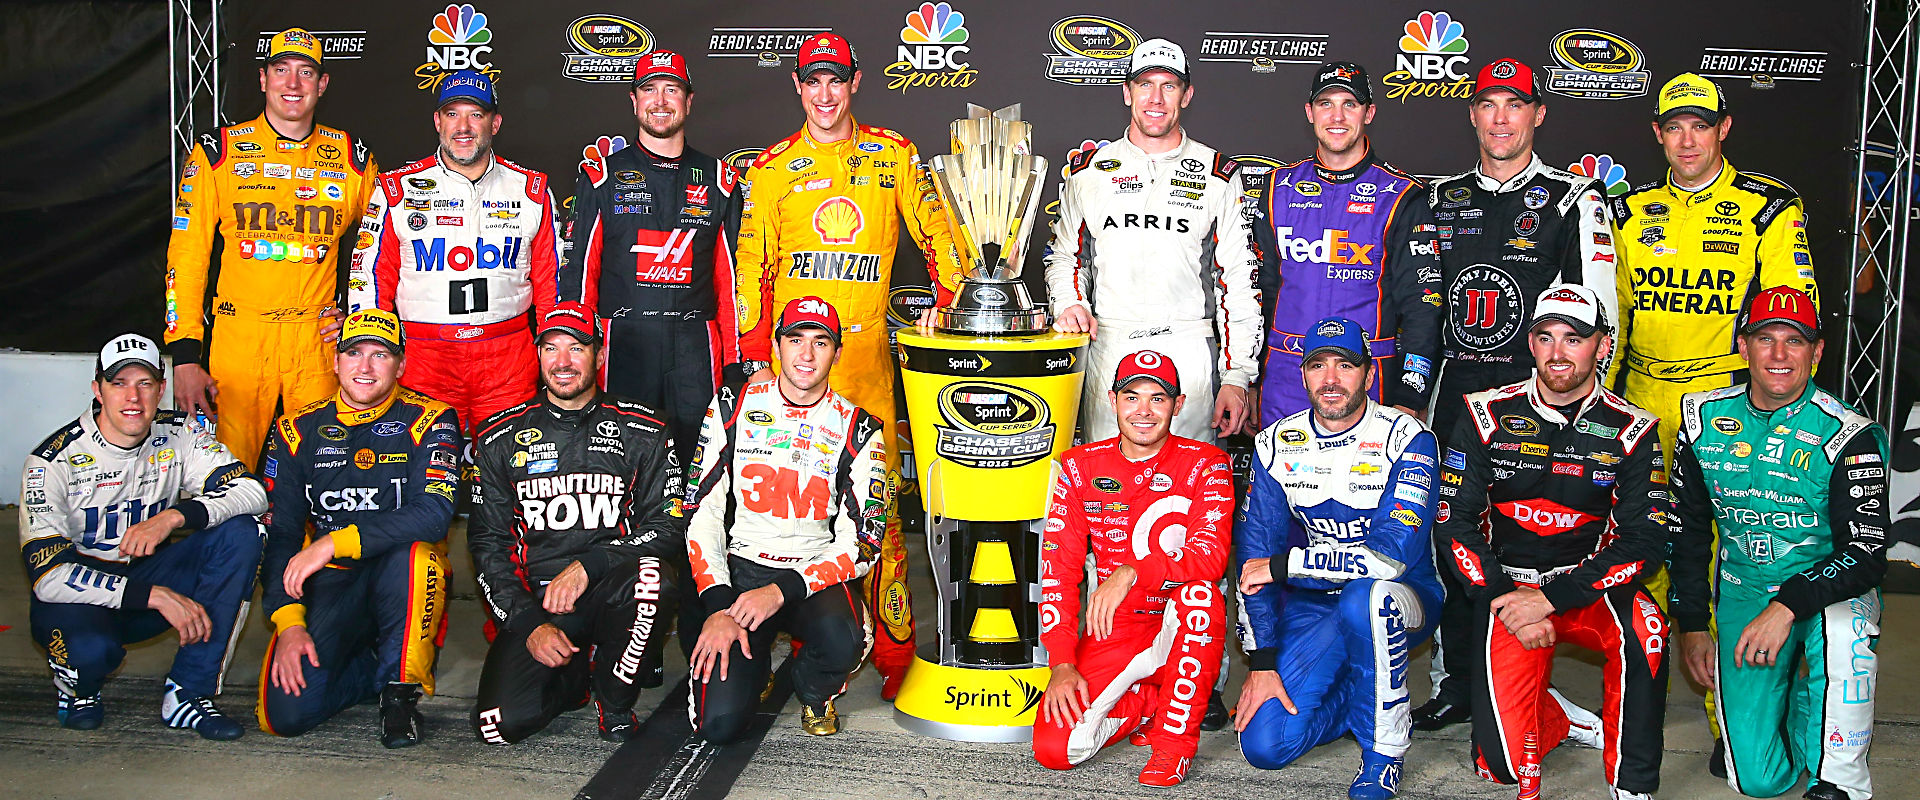 rookie or former champion driver focus turns to chase for the sprint cup nascar sporting news. Black Bedroom Furniture Sets. Home Design Ideas